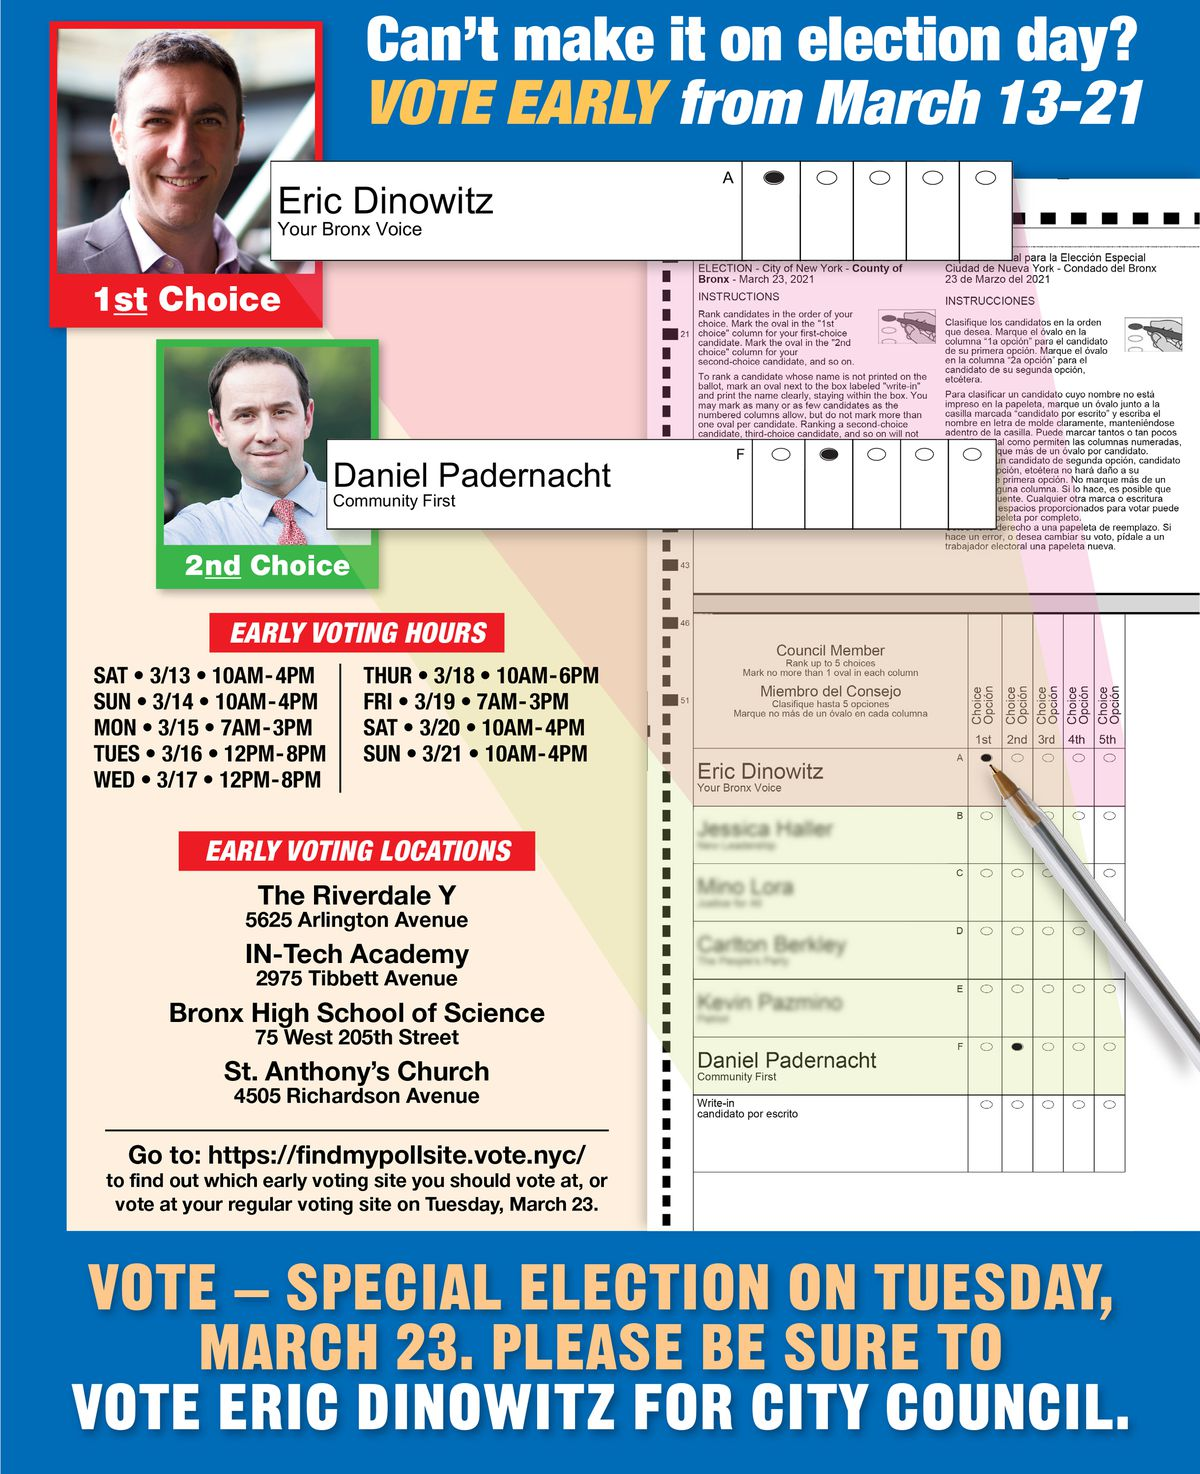 An independent group paid for an ad showing voters how to use ranked choice voting to support Eric Dinowitz and Daniel Padernacht.